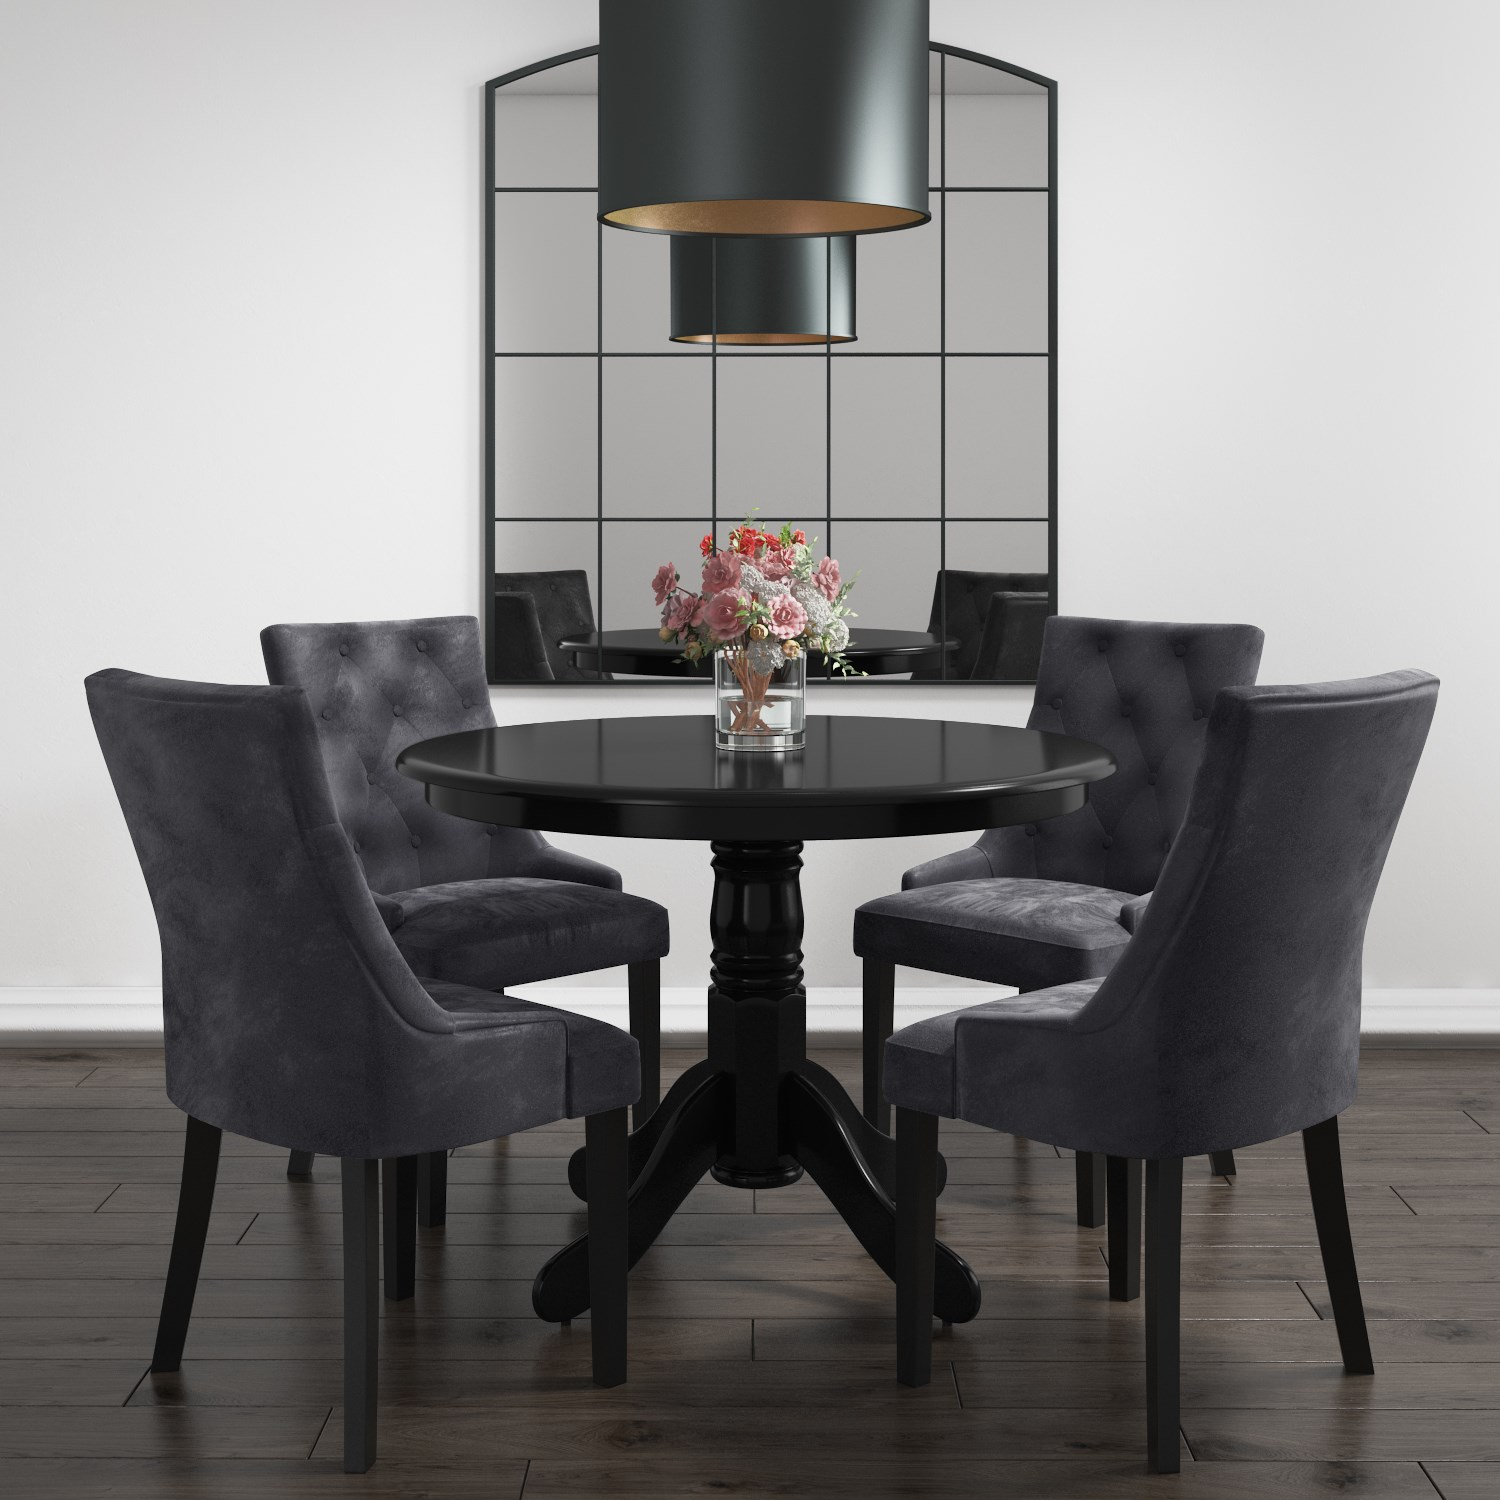 Small Round Dining Table In Black With 4 Velvet Chairs In Grey Rhode Island Kaylee Buyitdirect Ie